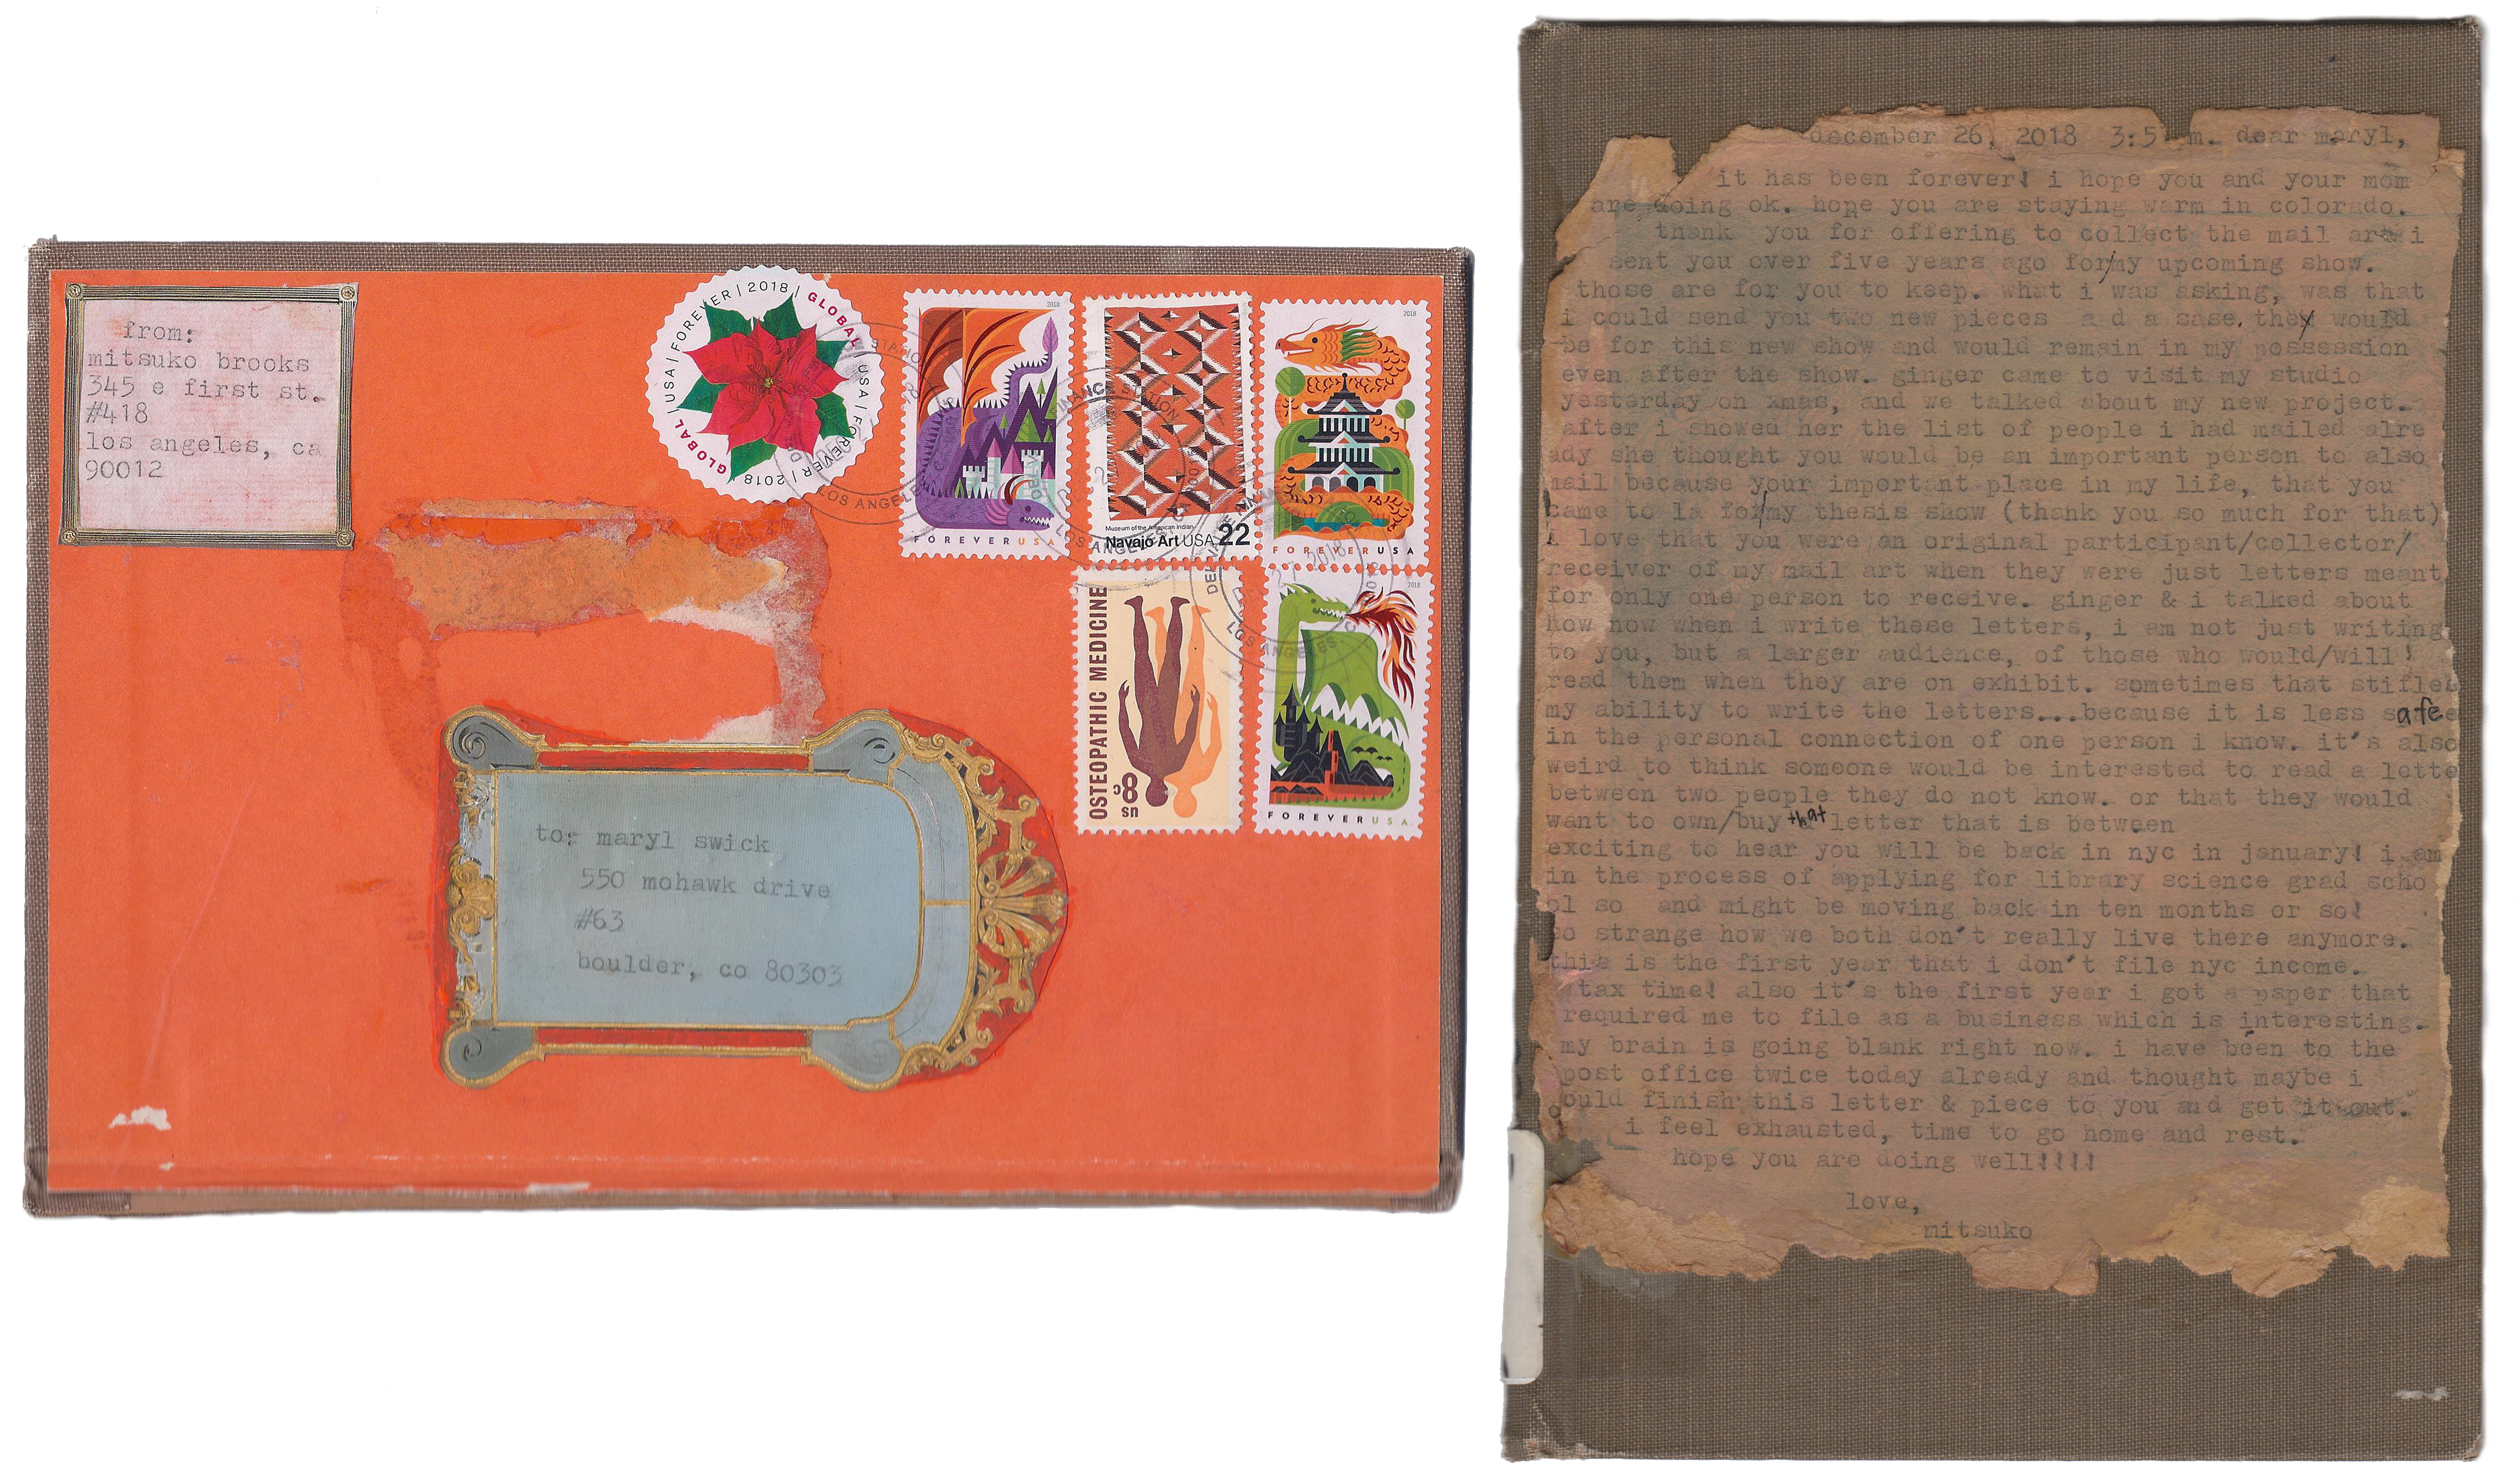 Mitsuko Brooks. <em>Mail to M.S., Dec. 22, 2018</em>, 2018. Ink, postage stamps, and rice paper collaged onto detached book cover, 3 5/8 x 2 3/8 inches (9.3 x 6 cm)